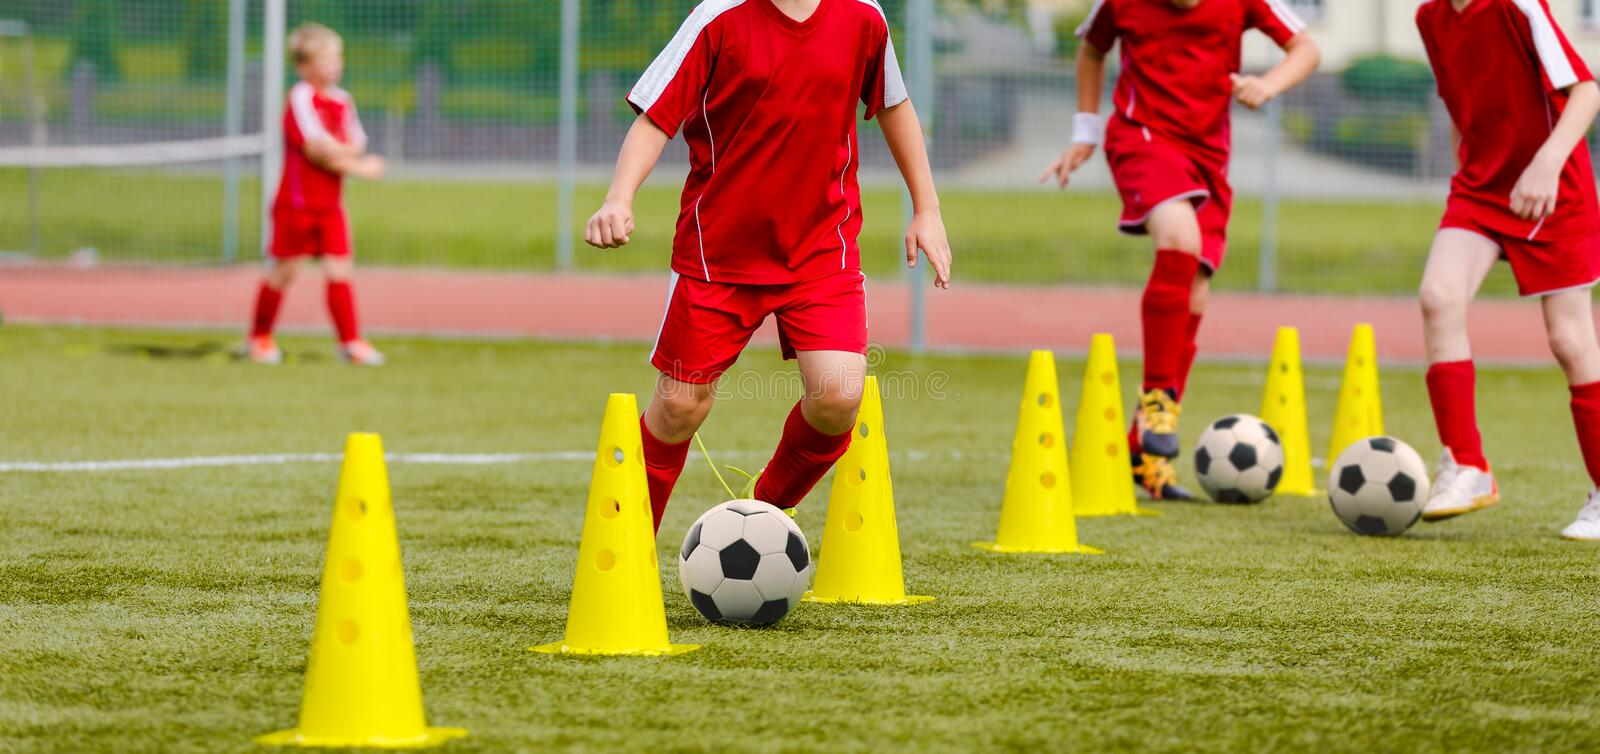 Soccer camp for kids. Boys practice dribbling in a field. Players develop good soccer dribbling skills. Children training with balls and cones. Soccer slalom royalty free stock photos